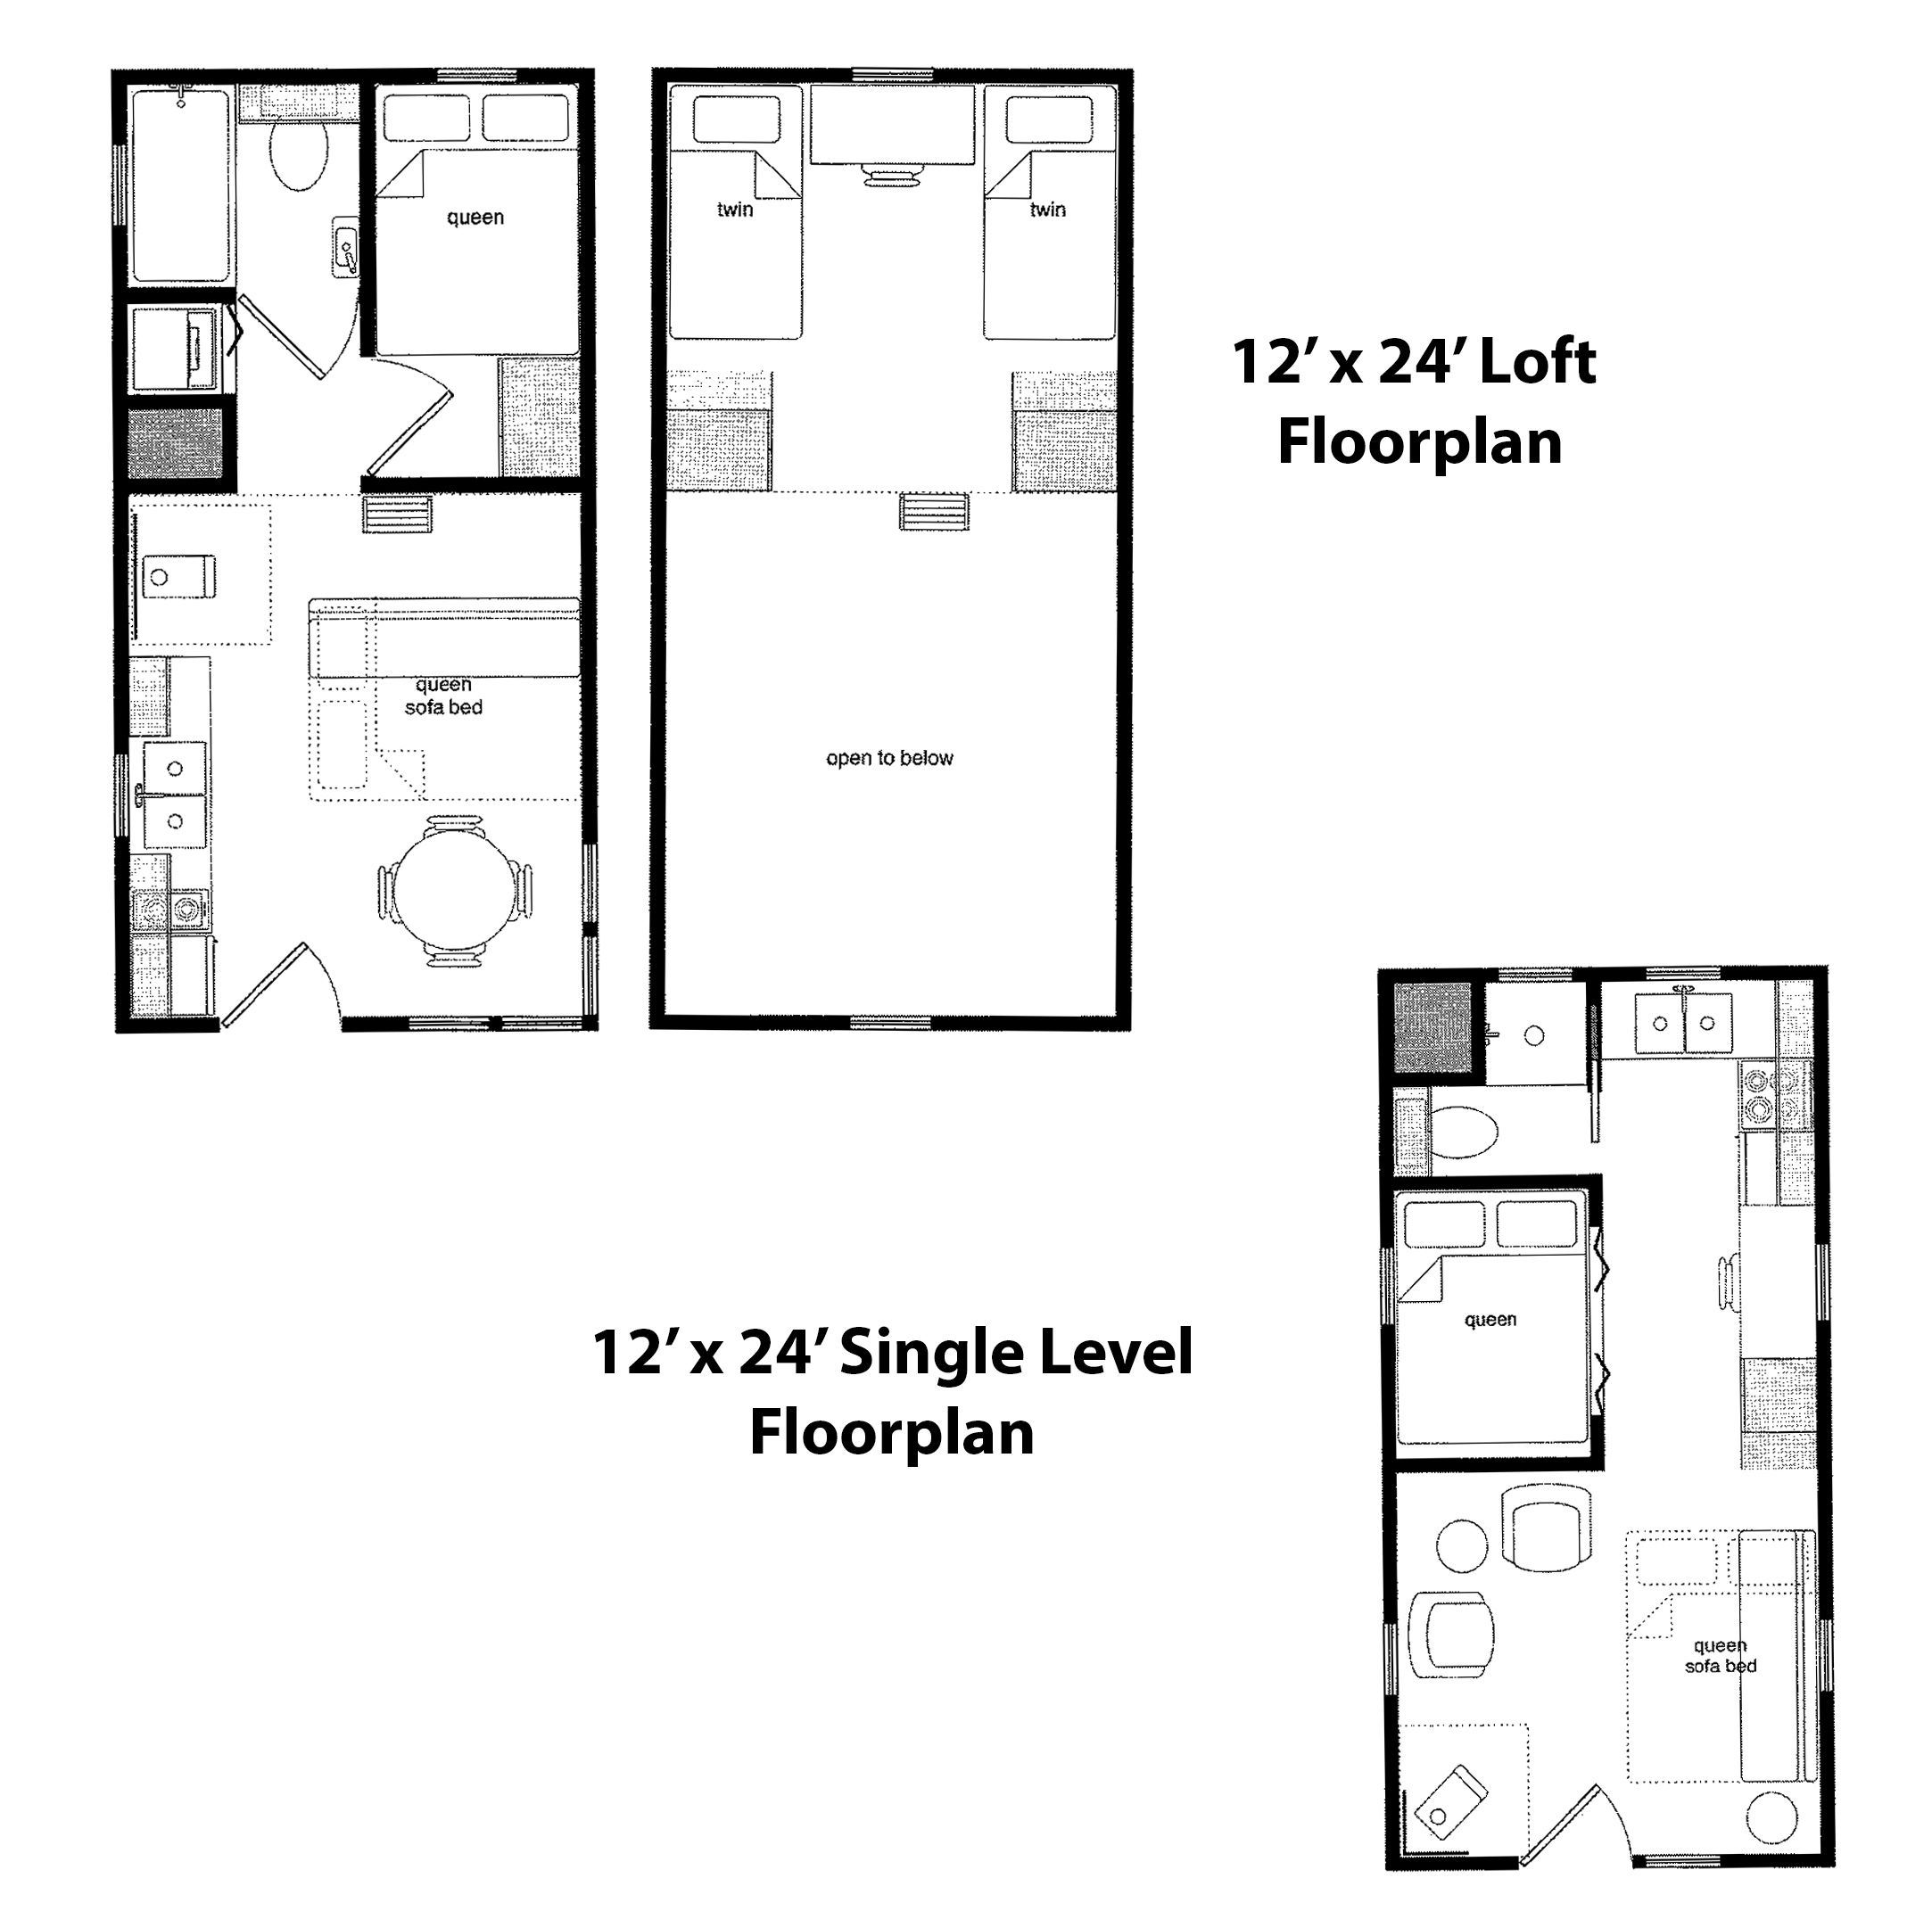 3fa999e079262959ead1fd90b032f20f Finished Right Contracting Offers Tiny Home Cabin Kits From 12x12 O Cabin Floor Plans Shed Floor Plans Tiny House Floor Plans